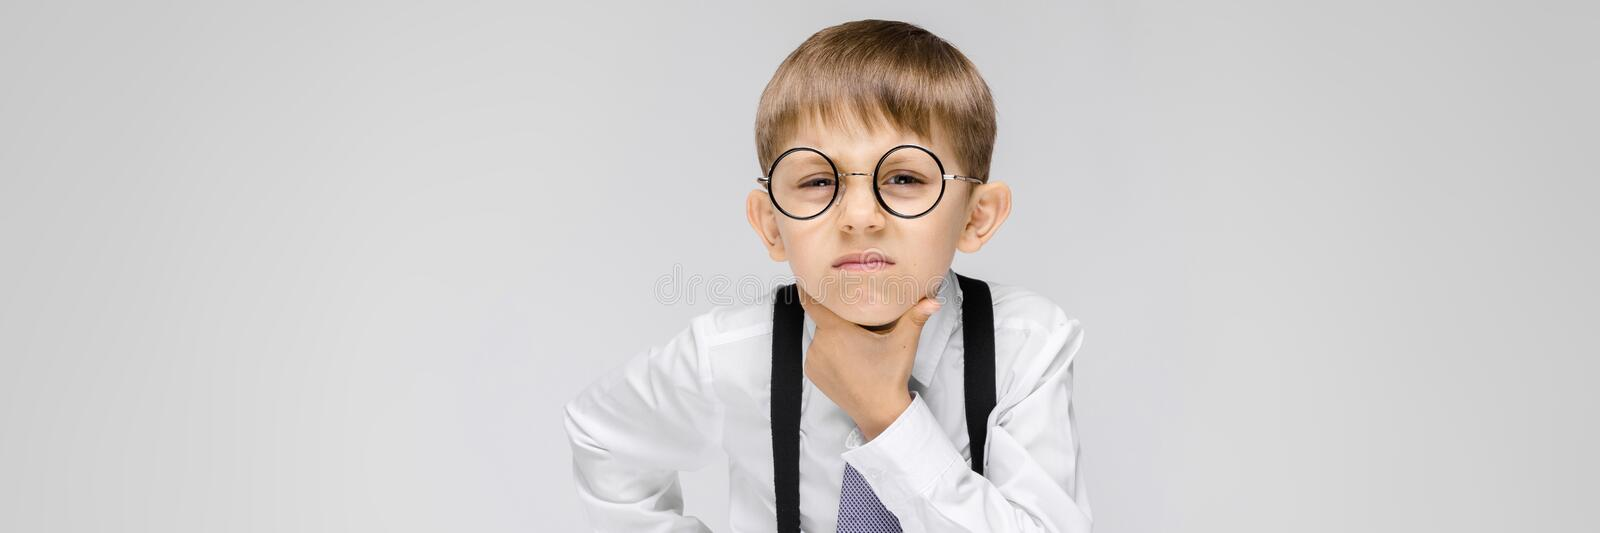 A charming boy in a white shirt, suspenders, a tie and light jeans stands on a gray background. a boy with glasses is. Portrait of a boy on a gray background stock images